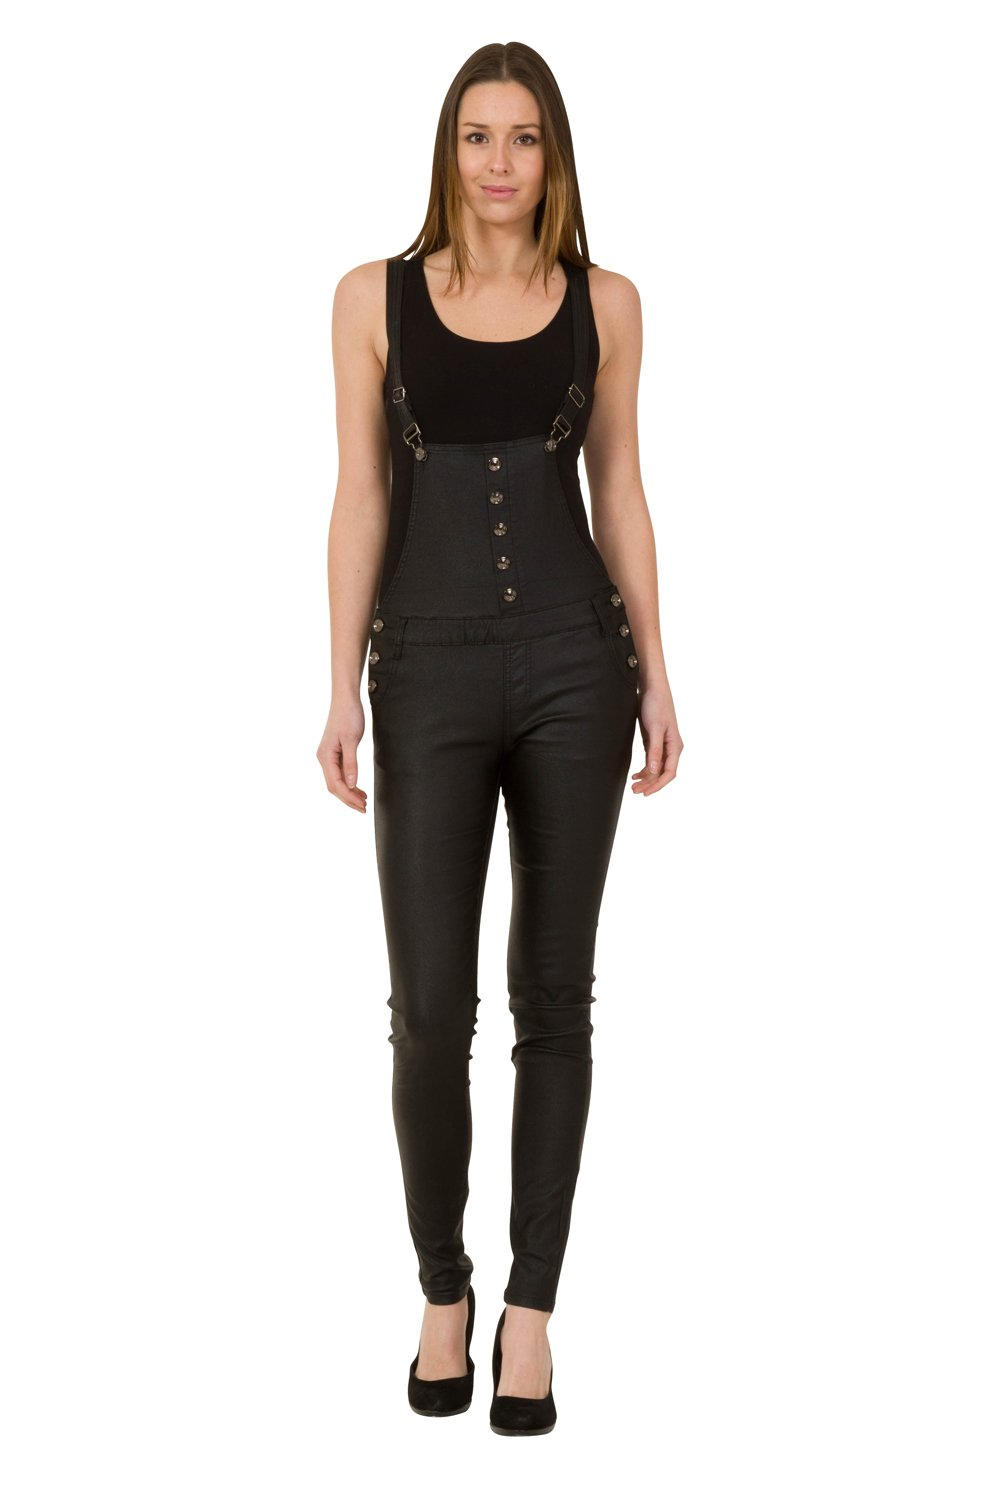 Womens Black Skinny Bib Overalls - Leather Look Slim Leg Dungarees with Stretch Crazy Lover